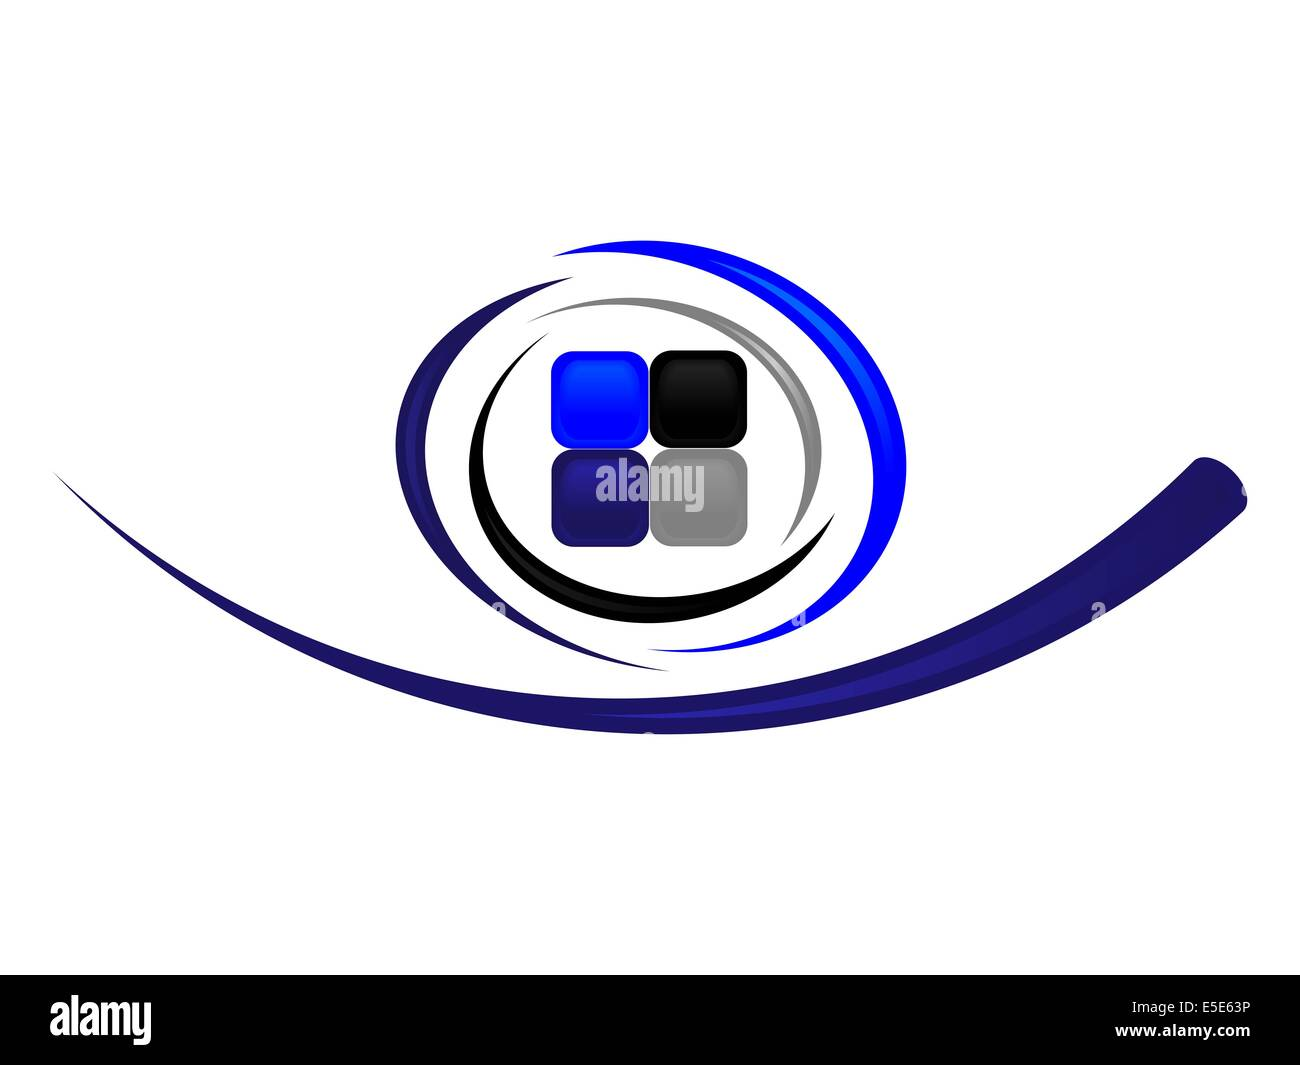 Logo for company in modern style - Stock Image